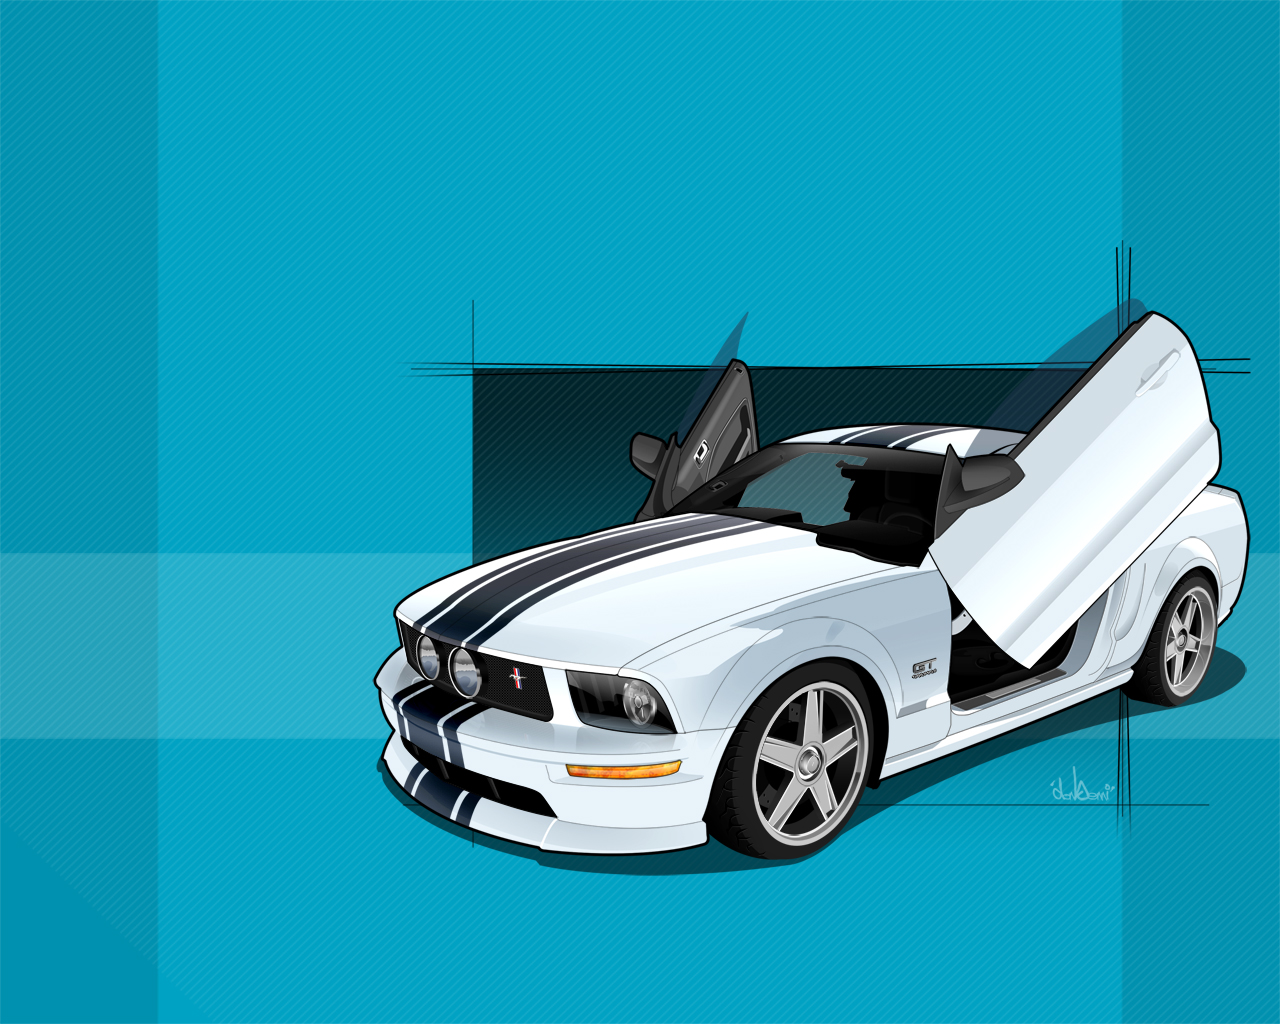 Wallpapers, carros, wallpaper, mustang, donbenni